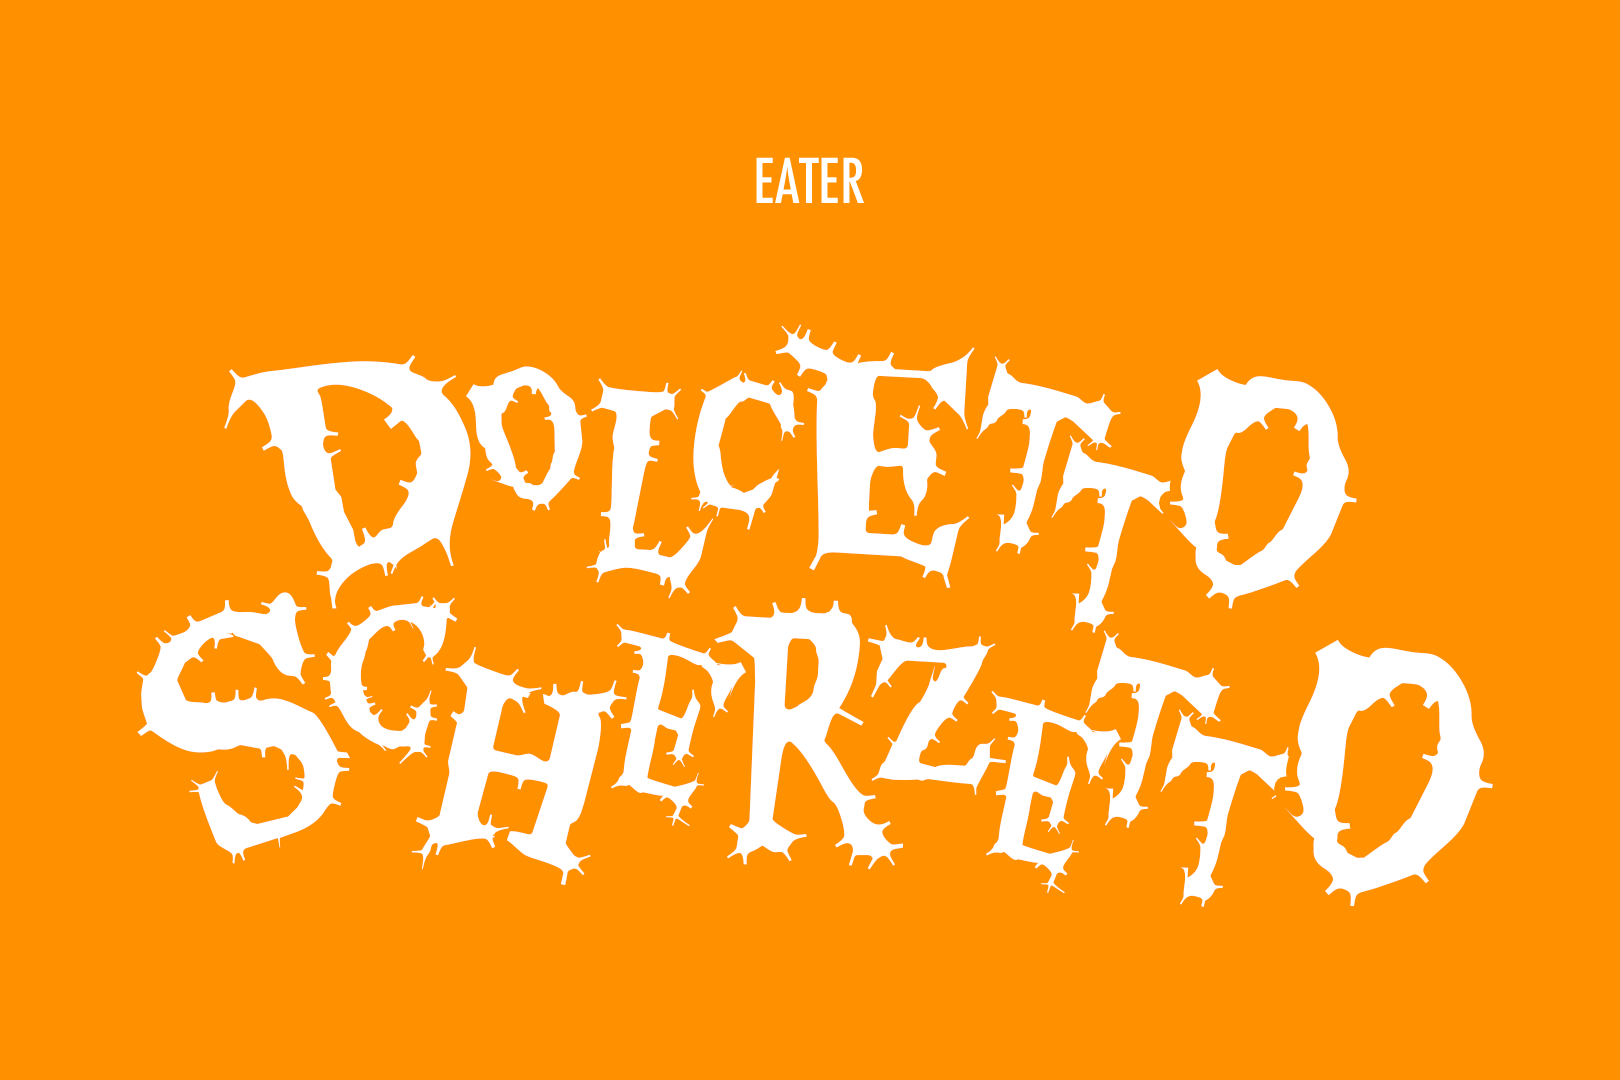 10-migliori-google-font-halloween-gratis-super-colors-eater-free-fonts-halloween